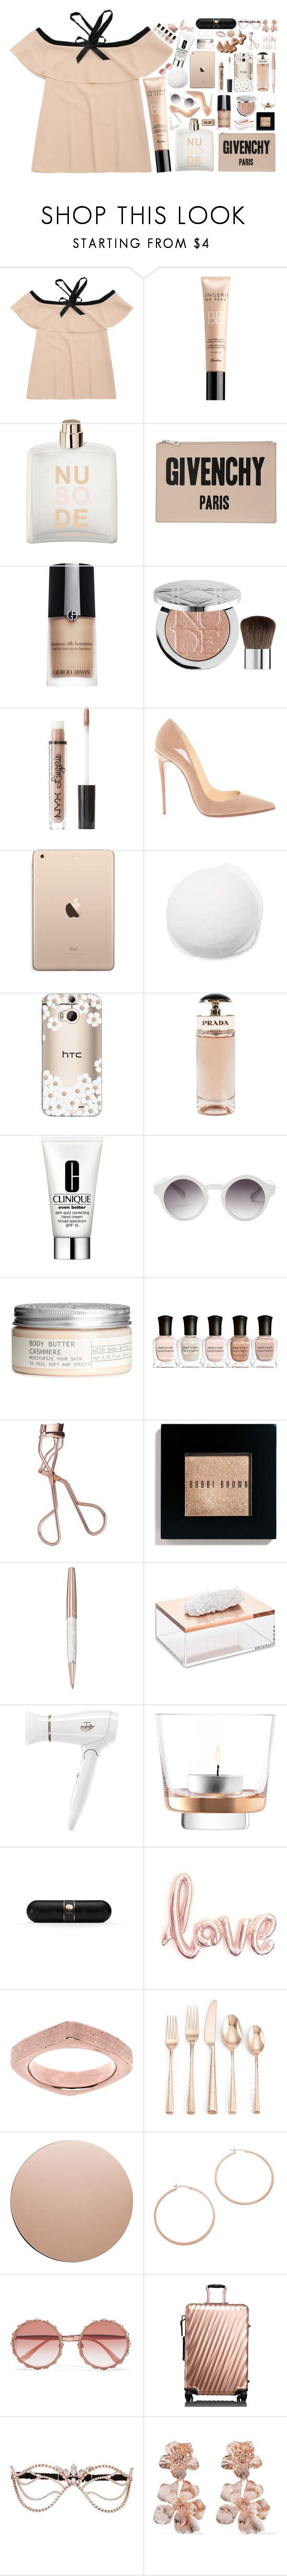 """""""NU so DE"""" by bbymayaine ❤ liked on Polyvore featuring Guerlain, COSTUME NATIONAL, Givenchy, Giorgio Armani, Sephora Collection, Charlotte Russe, Christian Louboutin, Casetify, Prada and Clinique"""